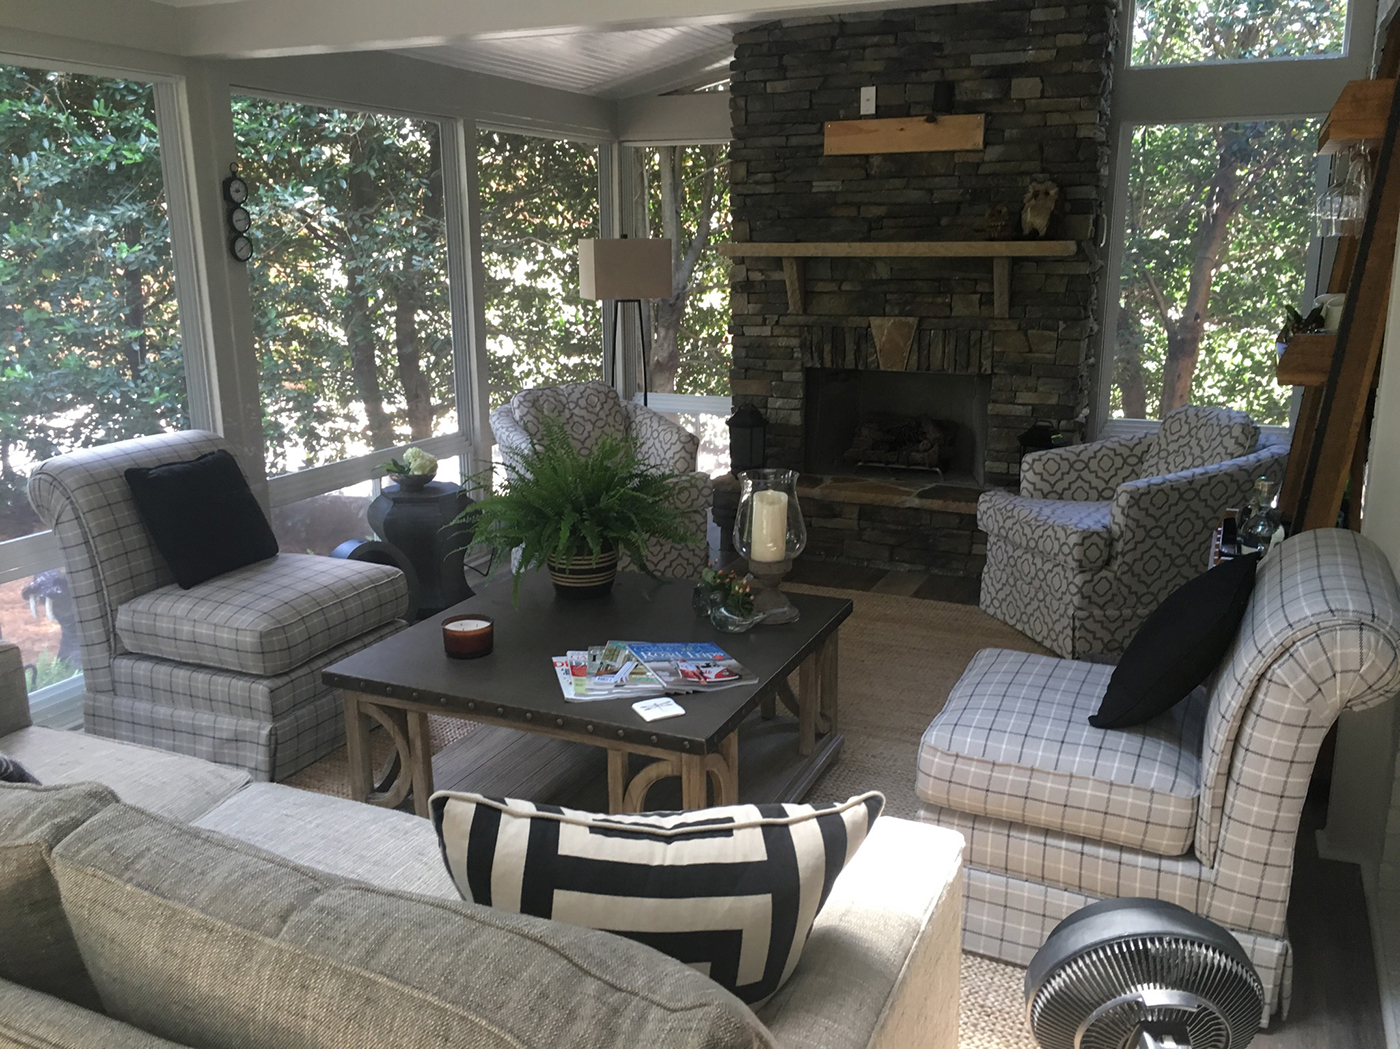 How much would it cost to integrate an outdoor fireplace into my screen  porch or covered patio? - Blog Archadeck Outdoor Living